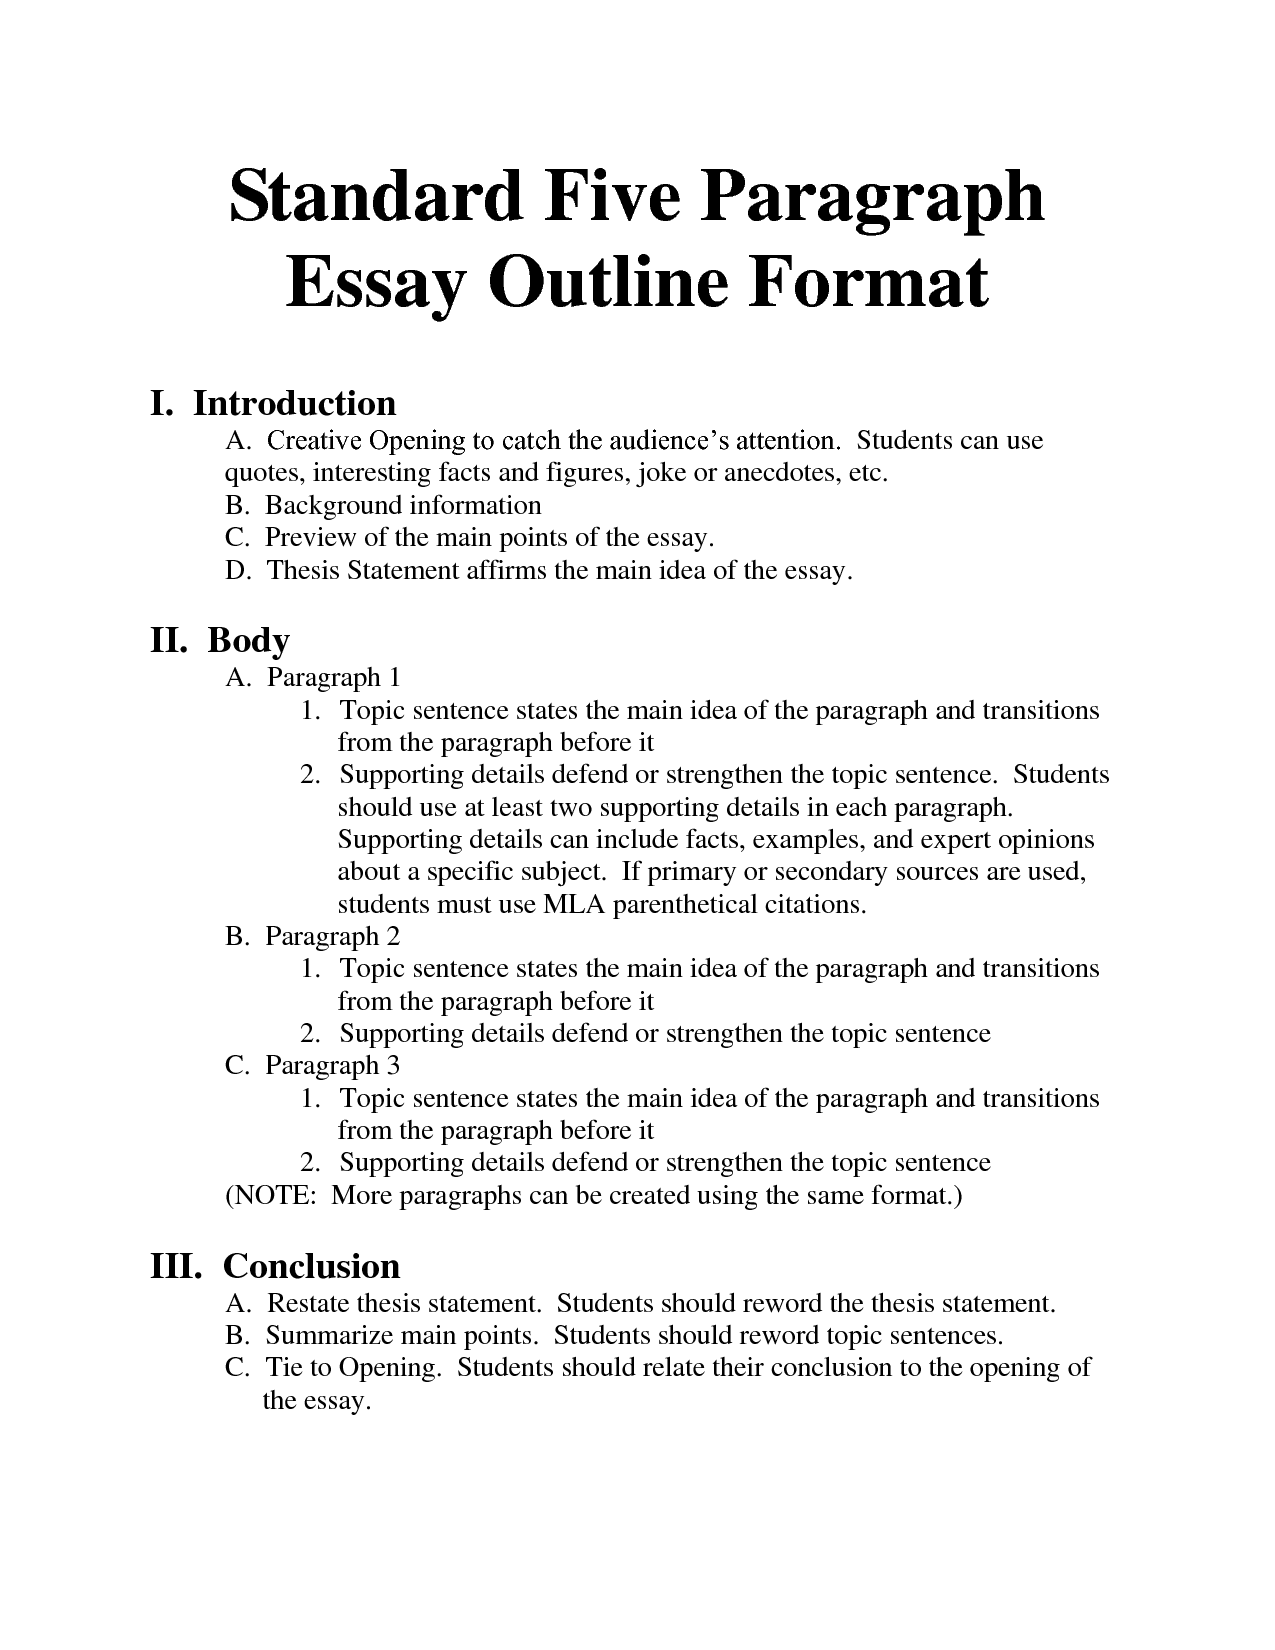 How To Write An Autobiographical Essay  Best Ideas About Good Essay How To Write Essay  Best Ideas About Good  Essay Essay On Women Rights also Essay Introduction Maker Best English Essay Essay Paper Topics Bad College Essay Topics  How To Write An Essay For School